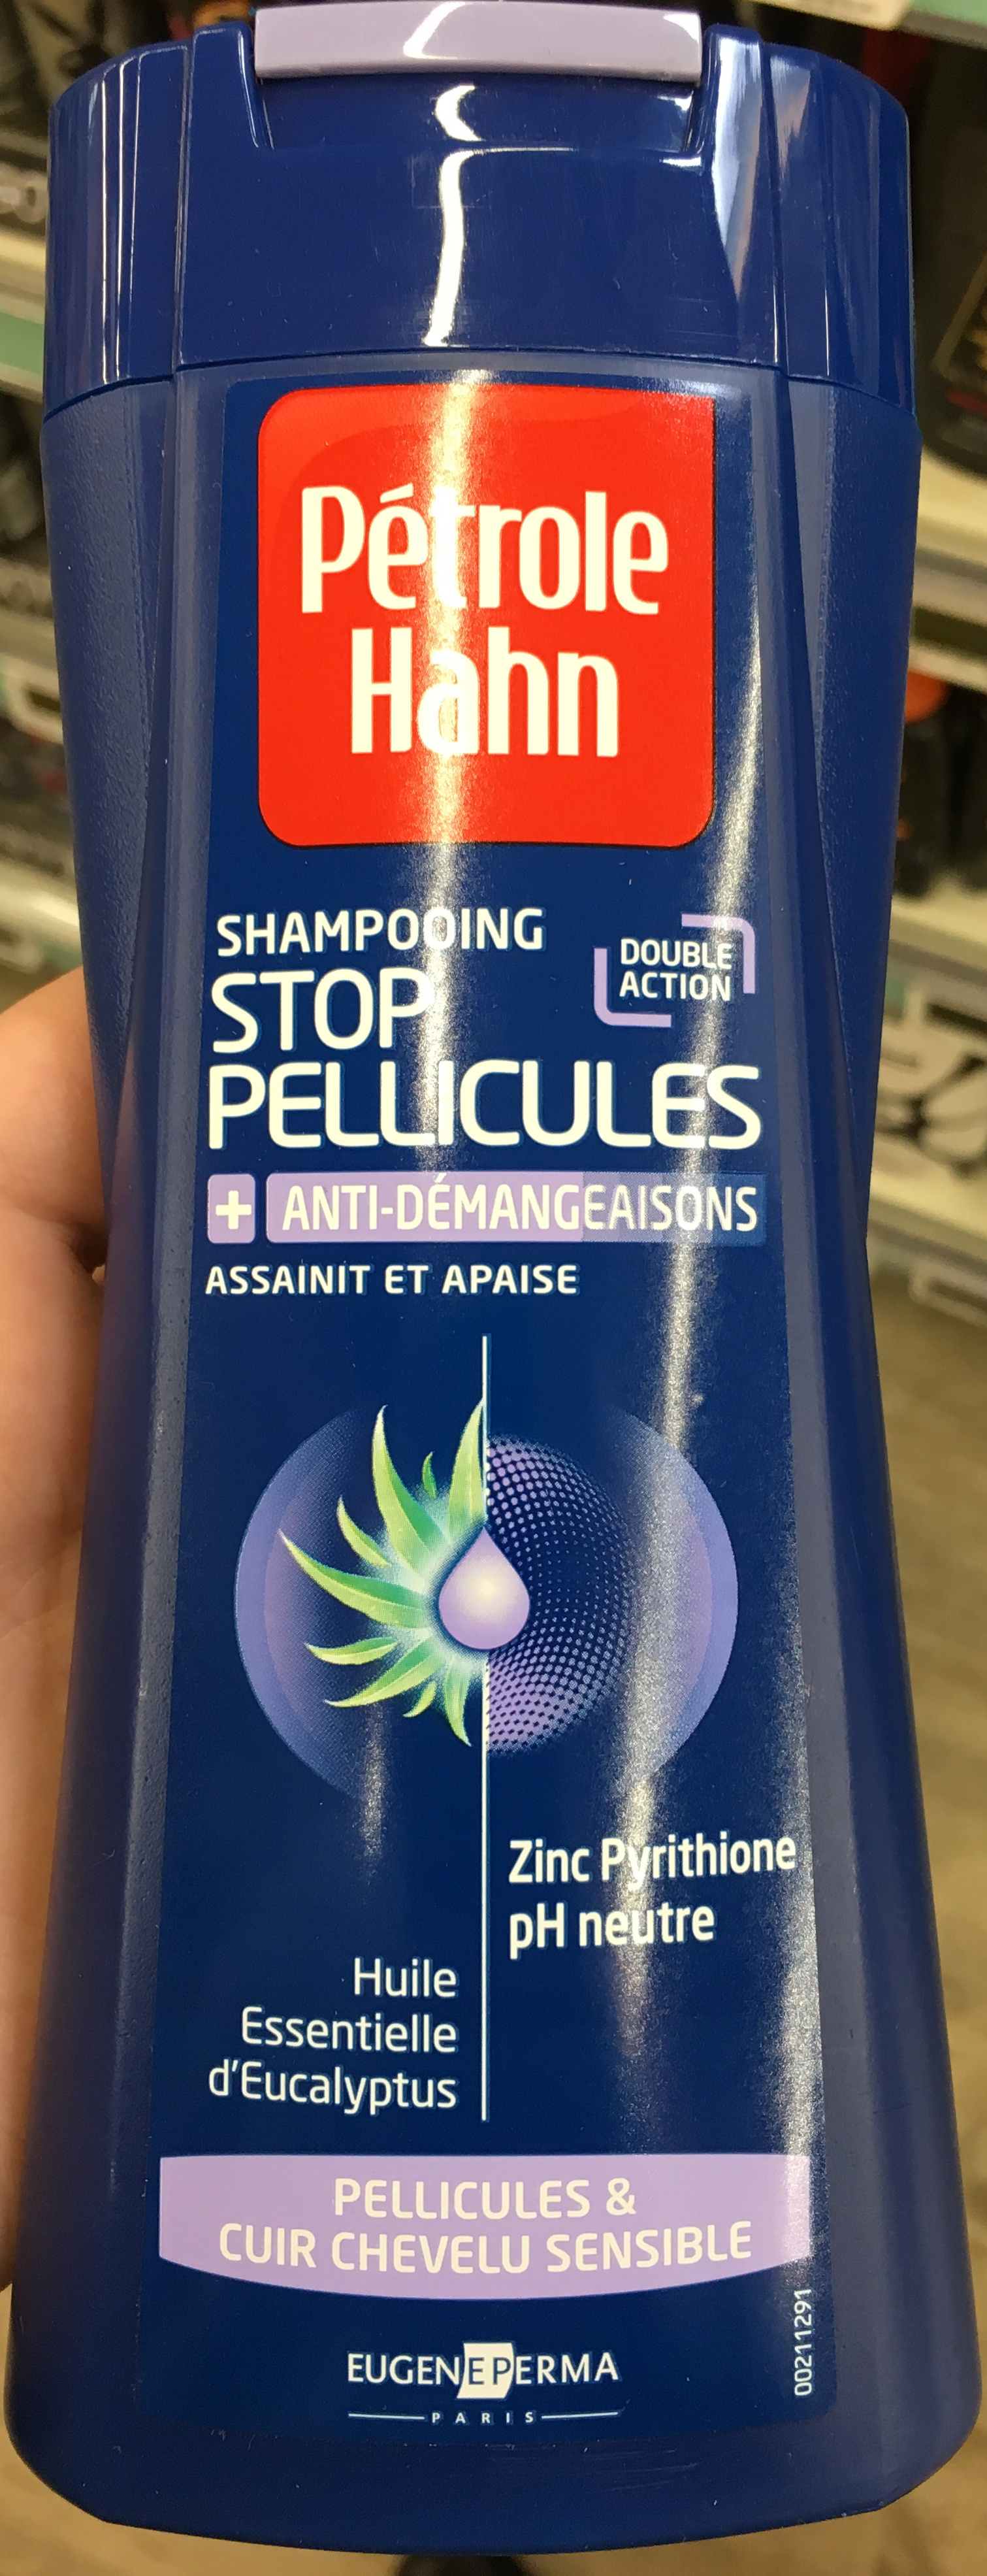 Shampooing Stop Pellicules + anti-démangeaisons - Product